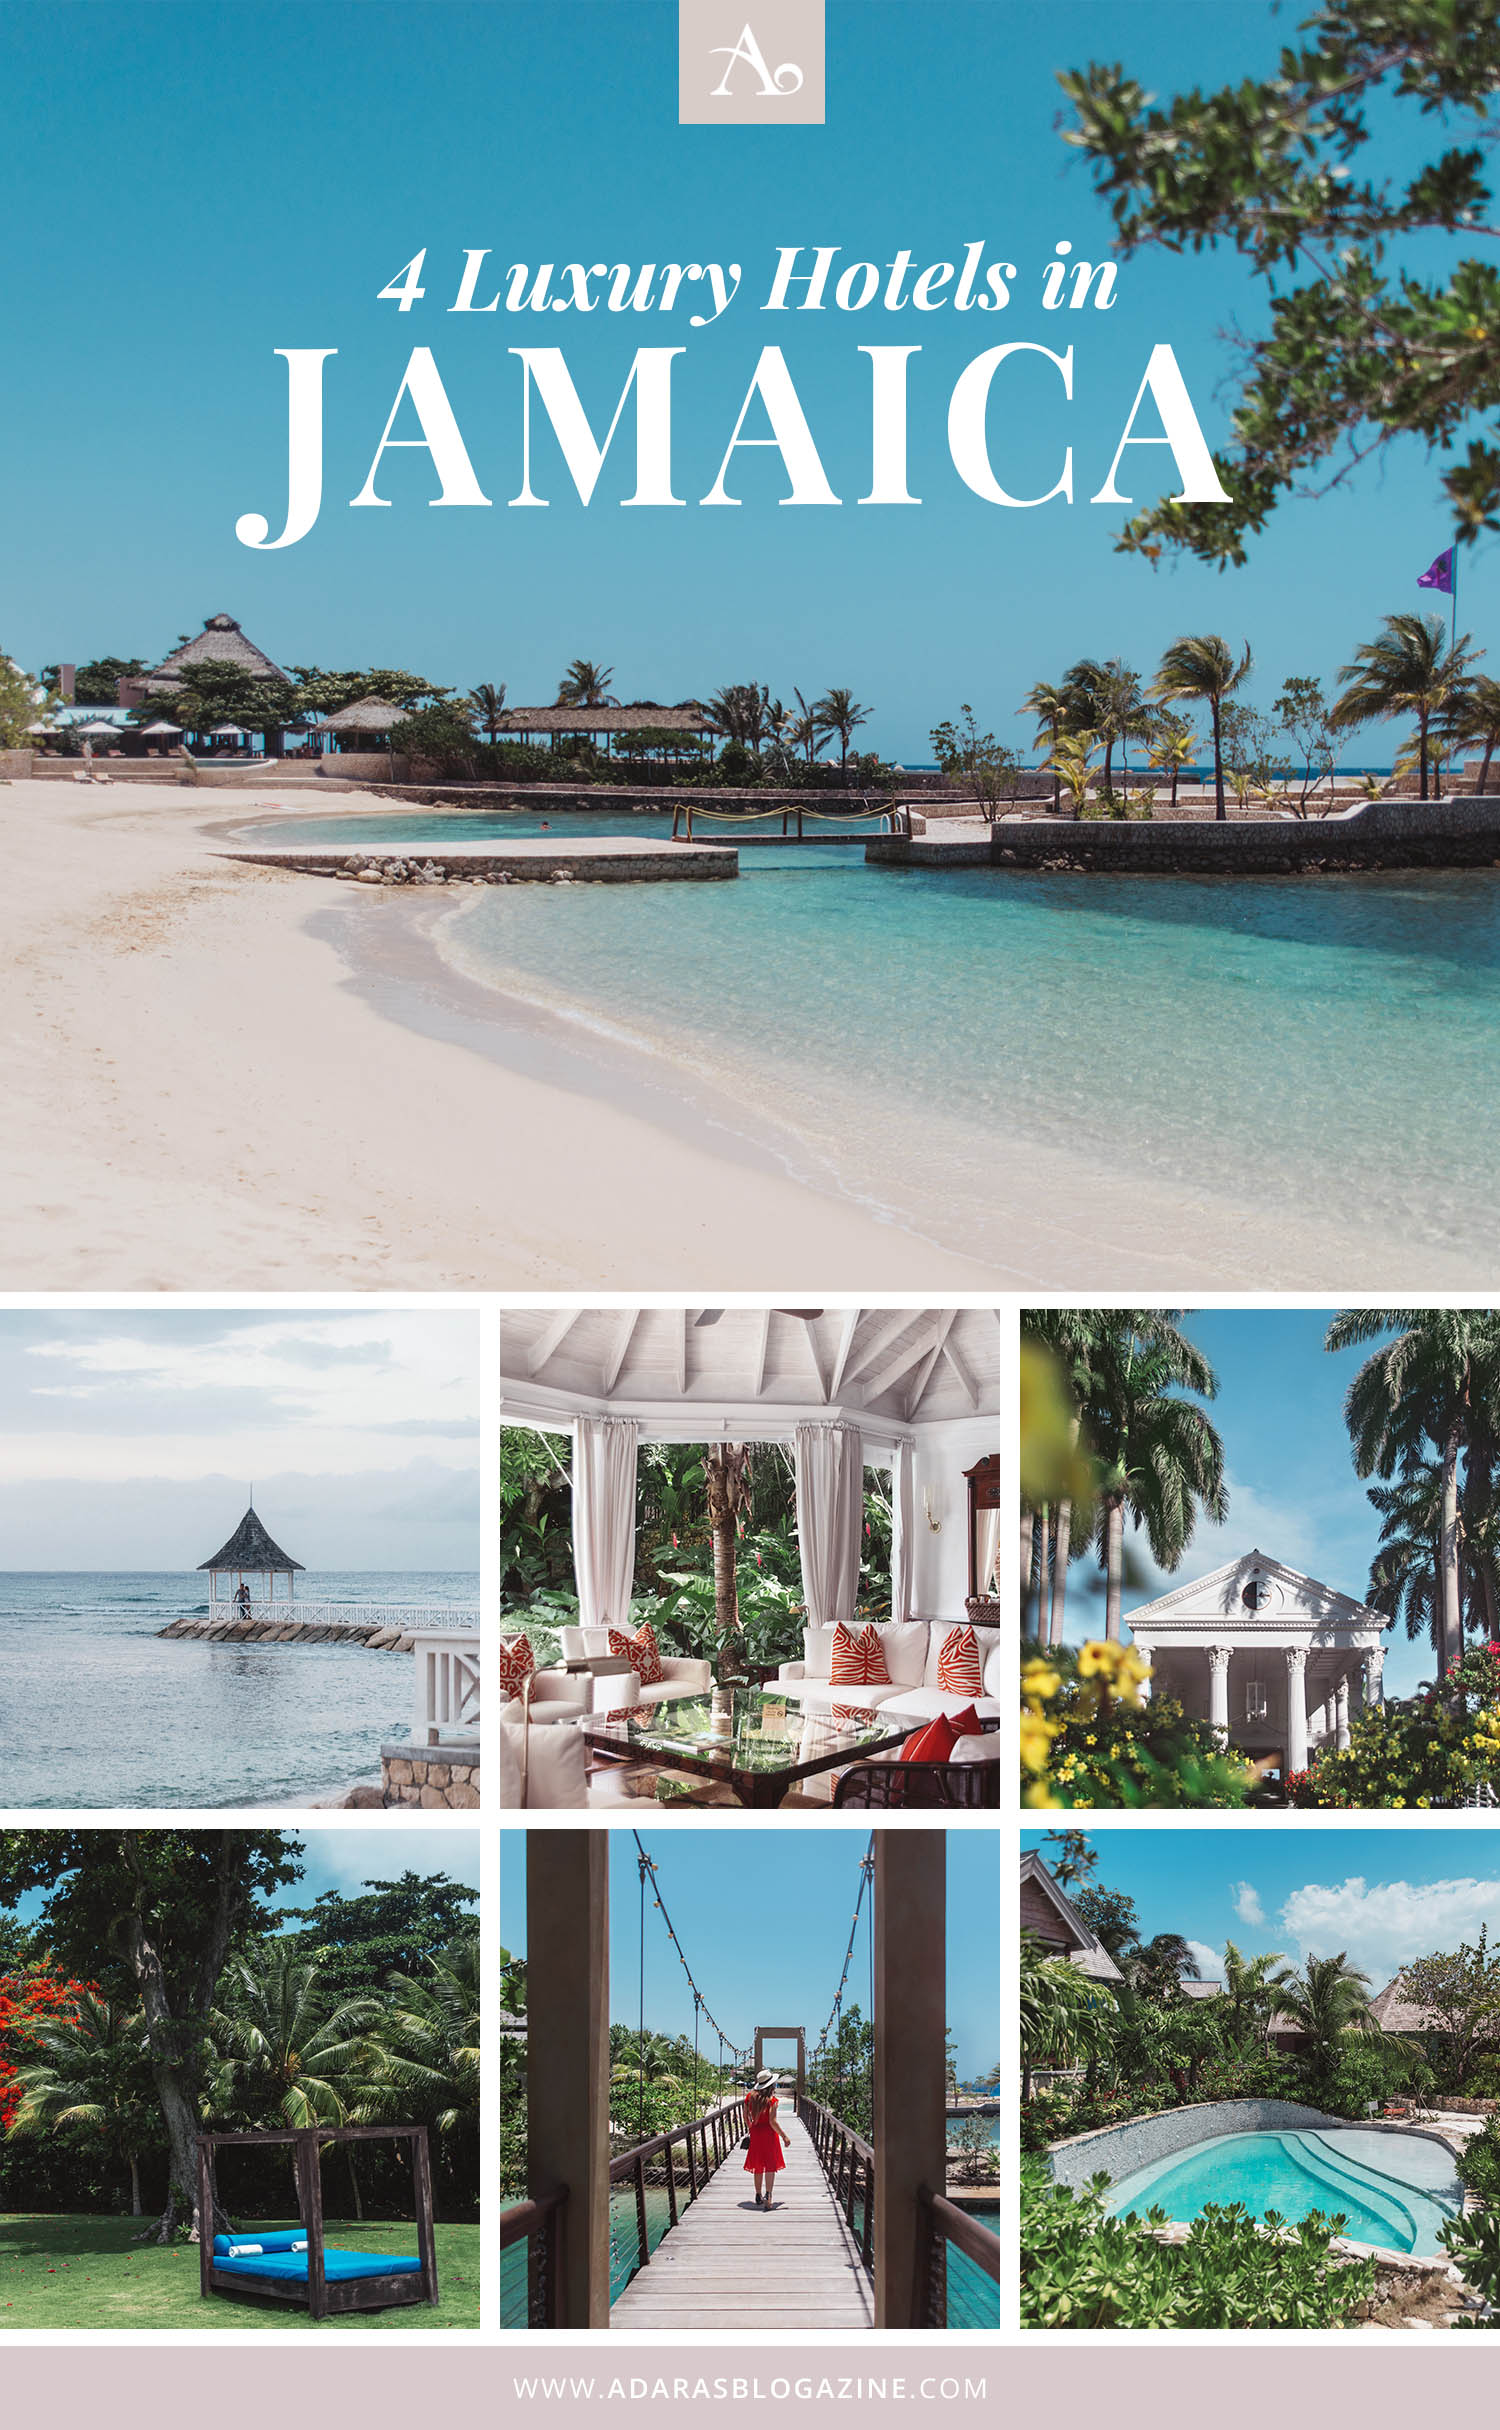 4 Luxury Hotels in Jamaica - A Guide to The Best Paradise Escapes